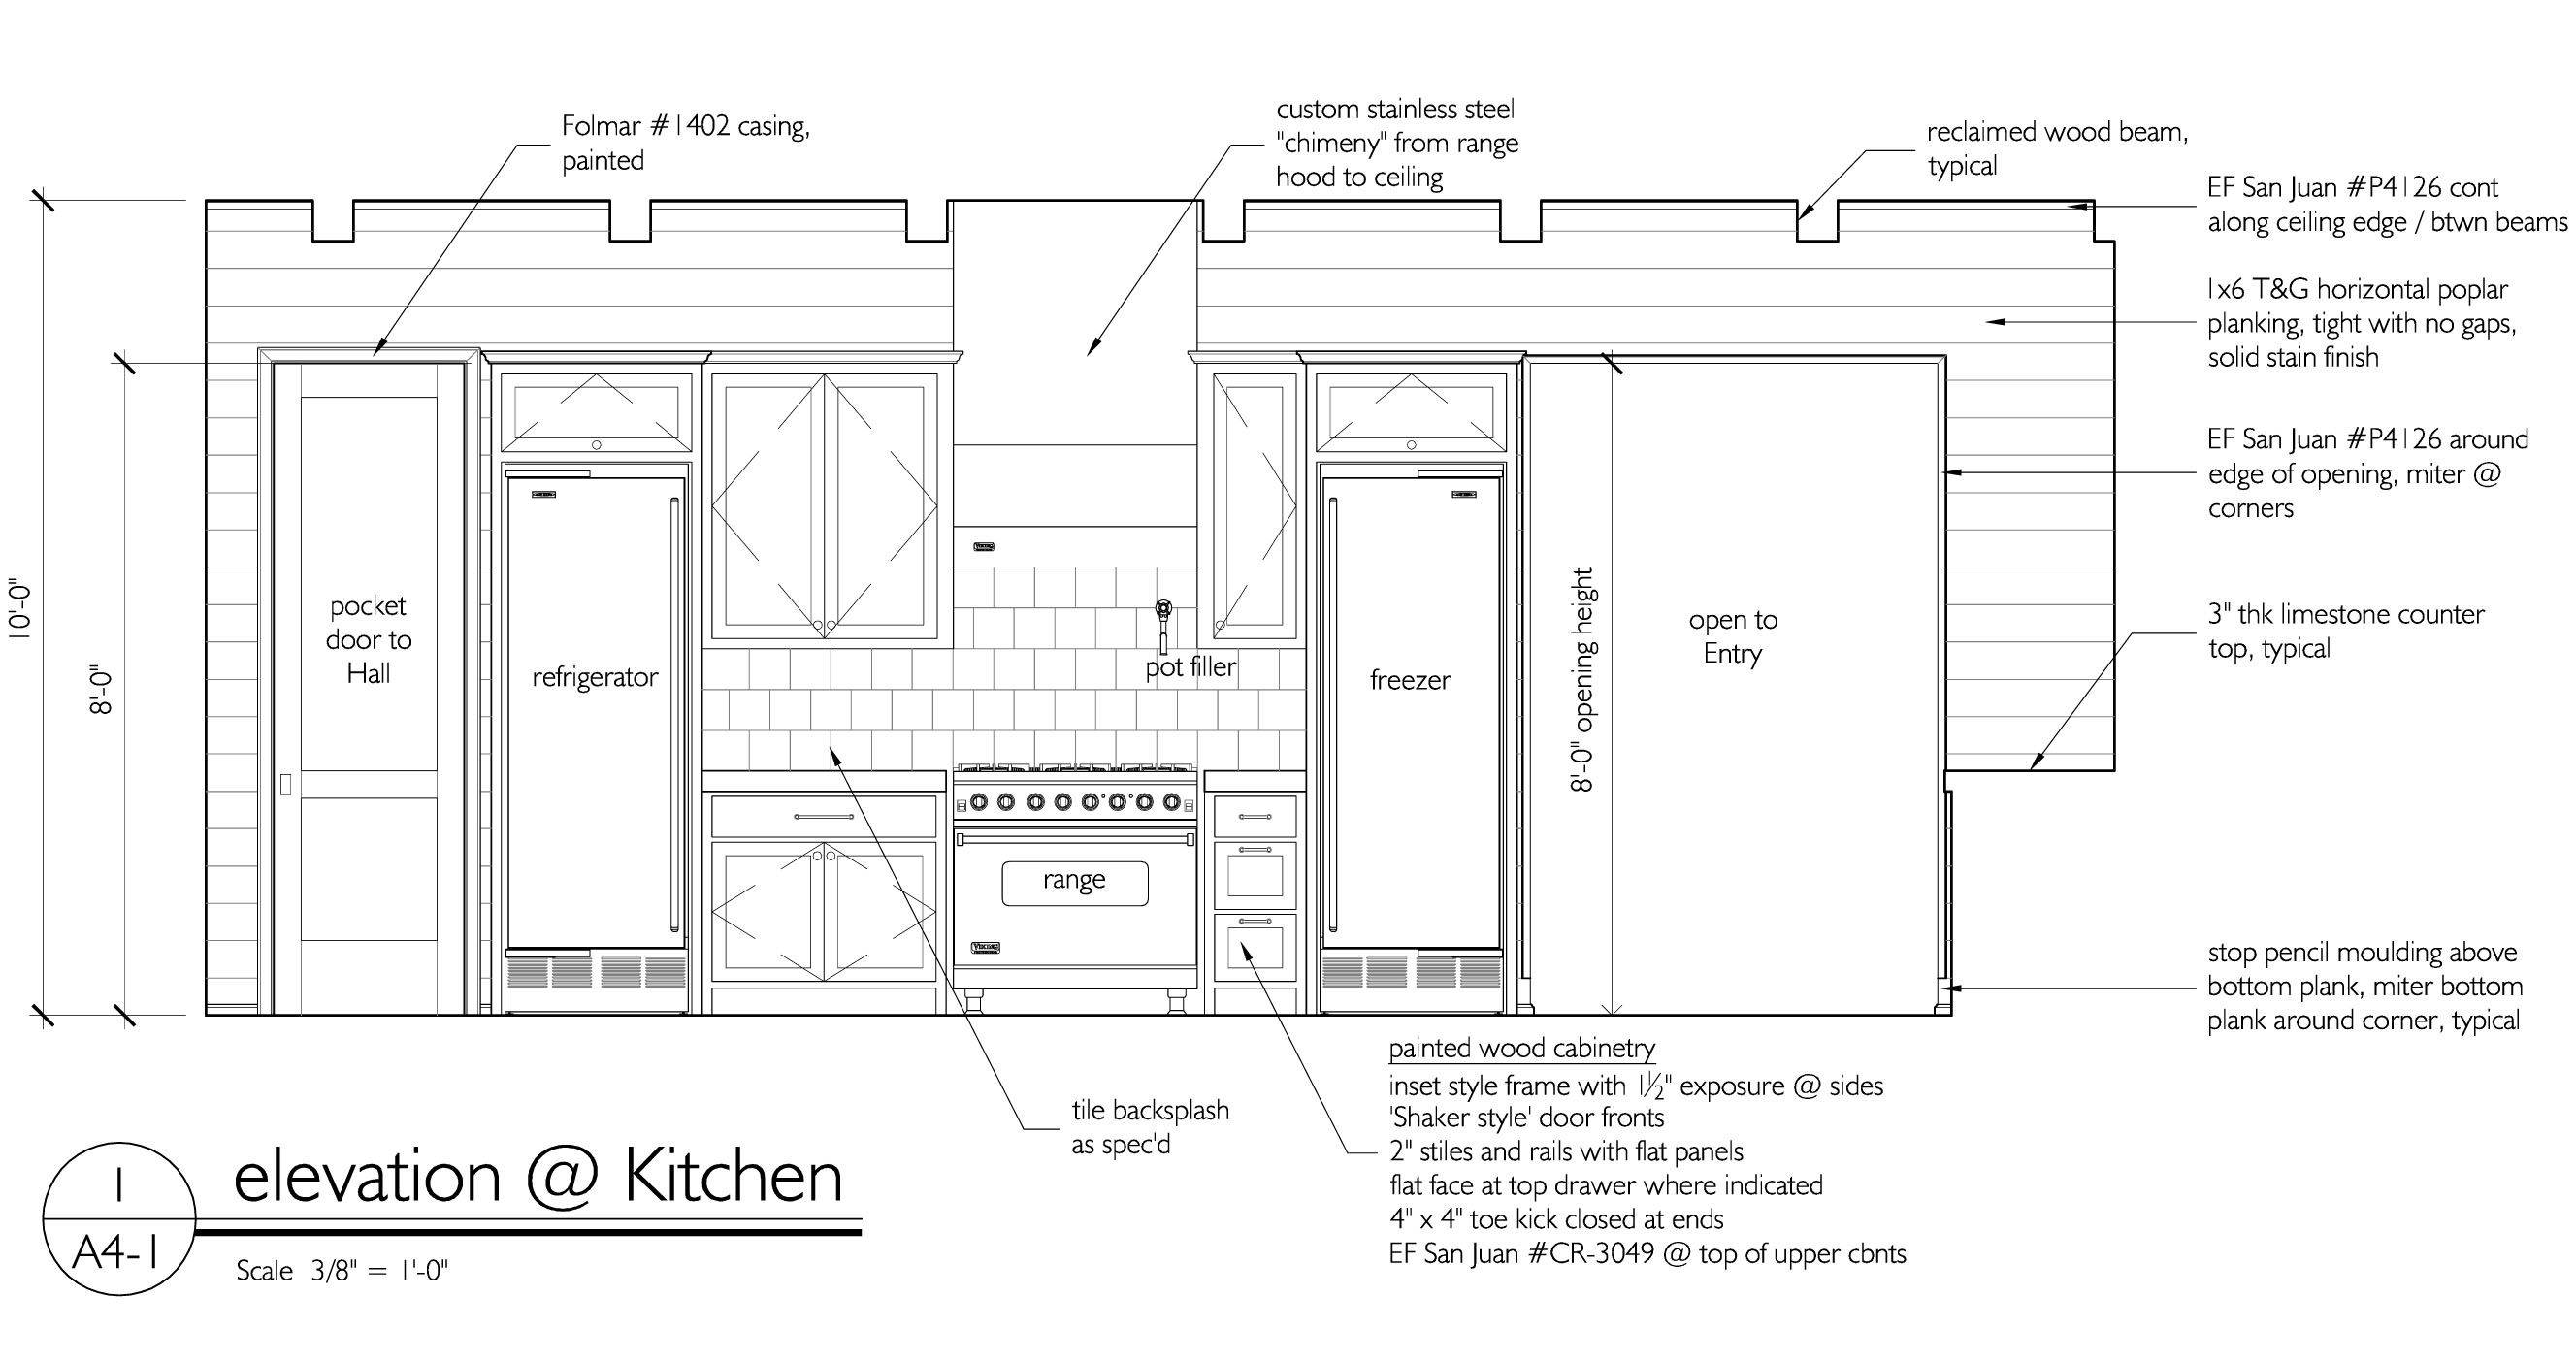 Tracery Kitchencad1 Jpg Jpeg Image 2655x1403 Pixels Scaled 47 Interior Rendering Construction Drawings Kitchen Drawing